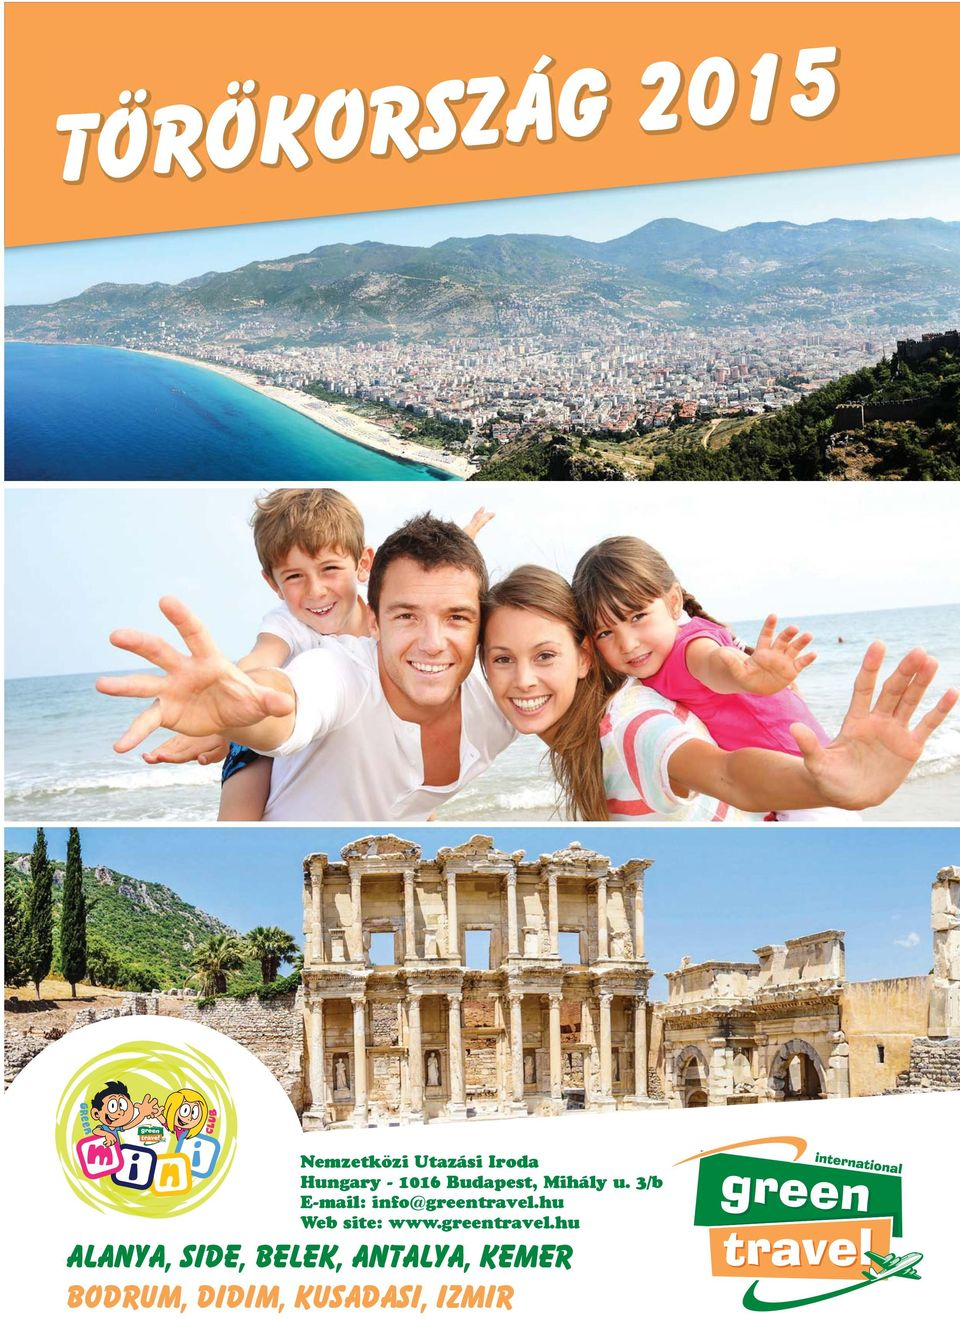 3/b E-mail: info@greentravel.hu Web site: www.